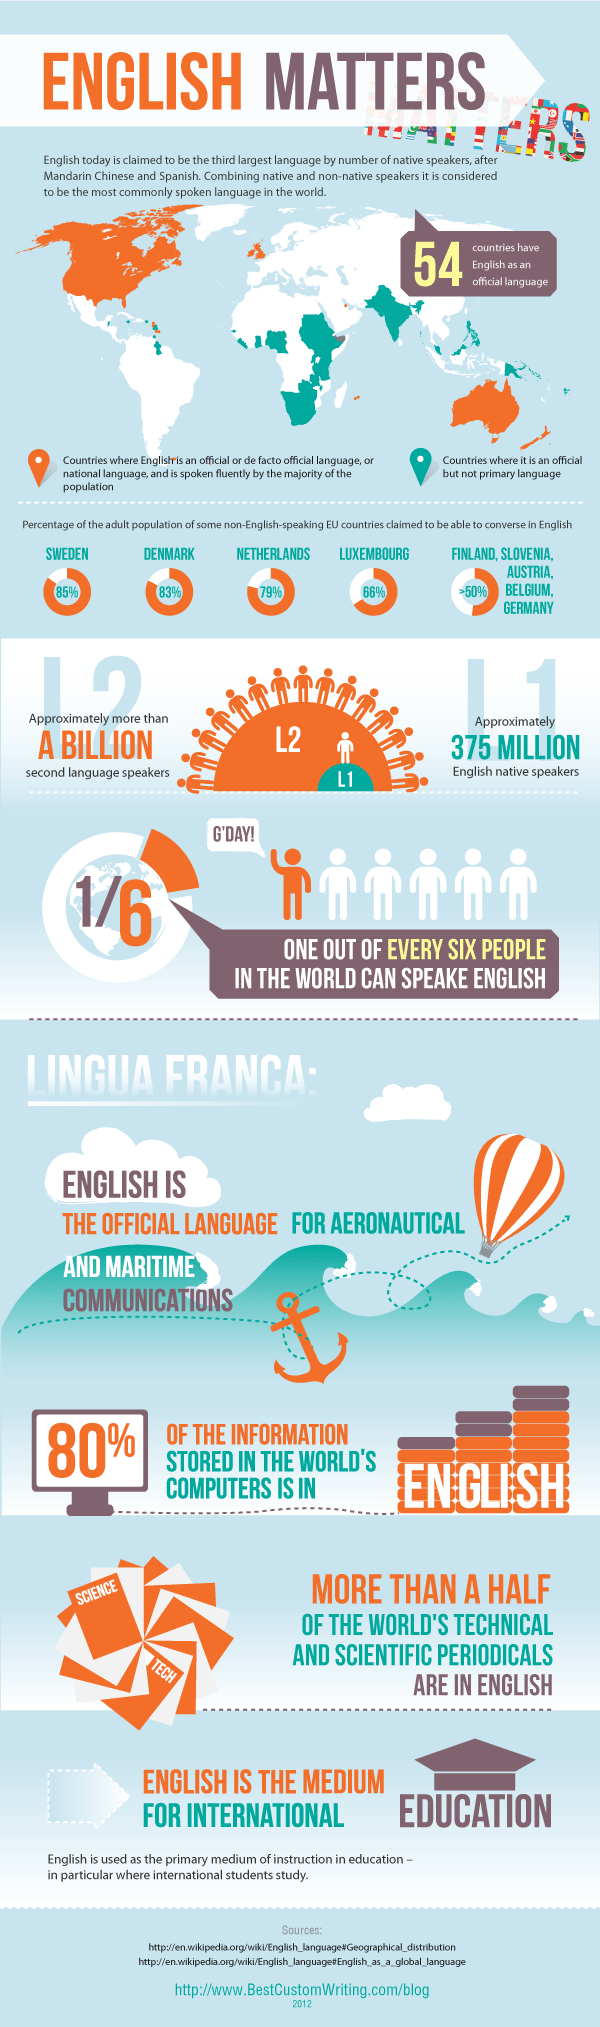 english-language-facts_5054bfbc9a0cc